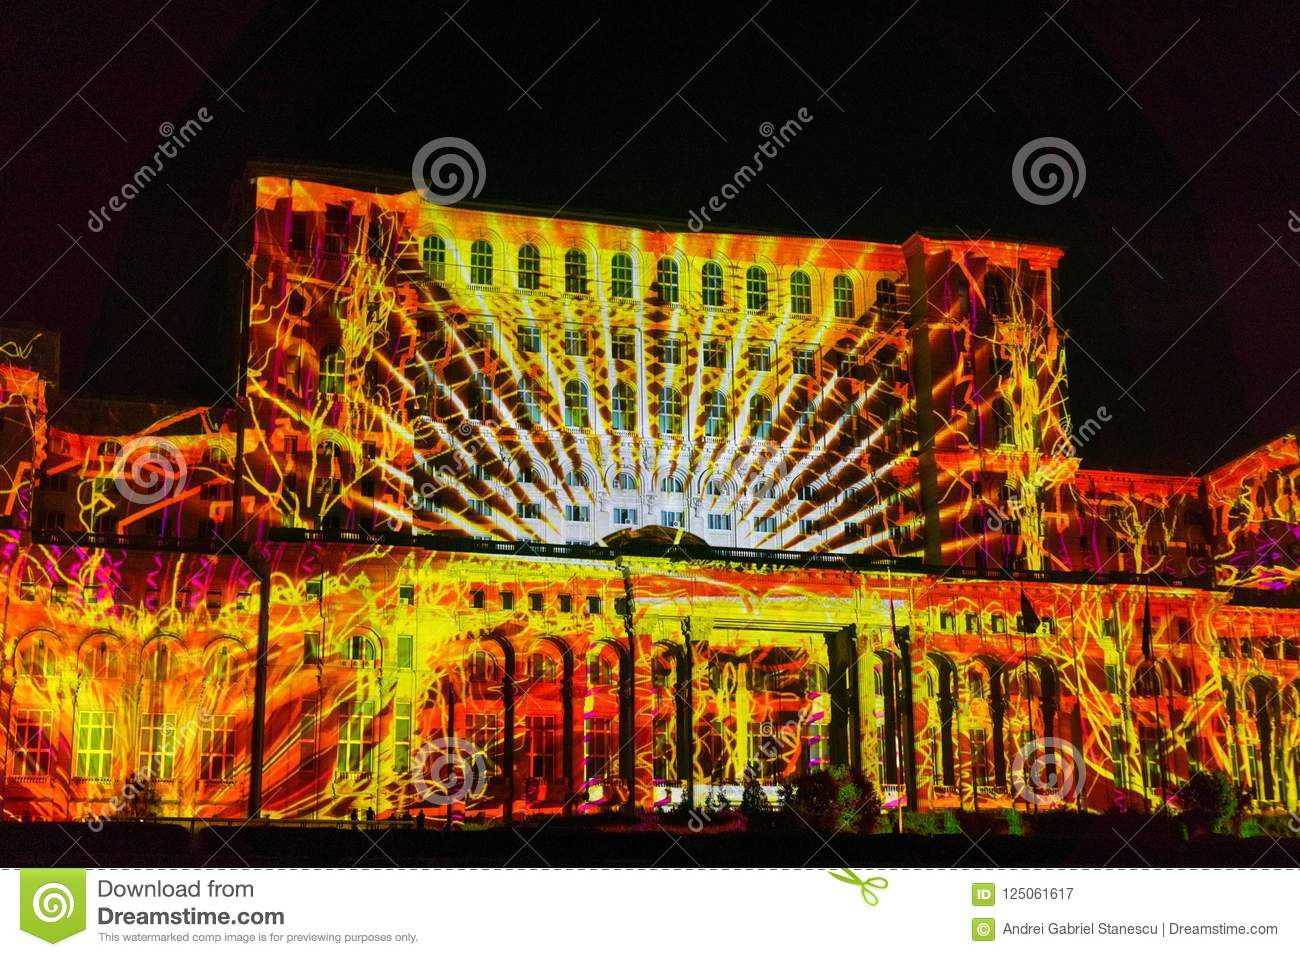 Projection during IMAPP 2017 Video Mapping competition, Bucharest